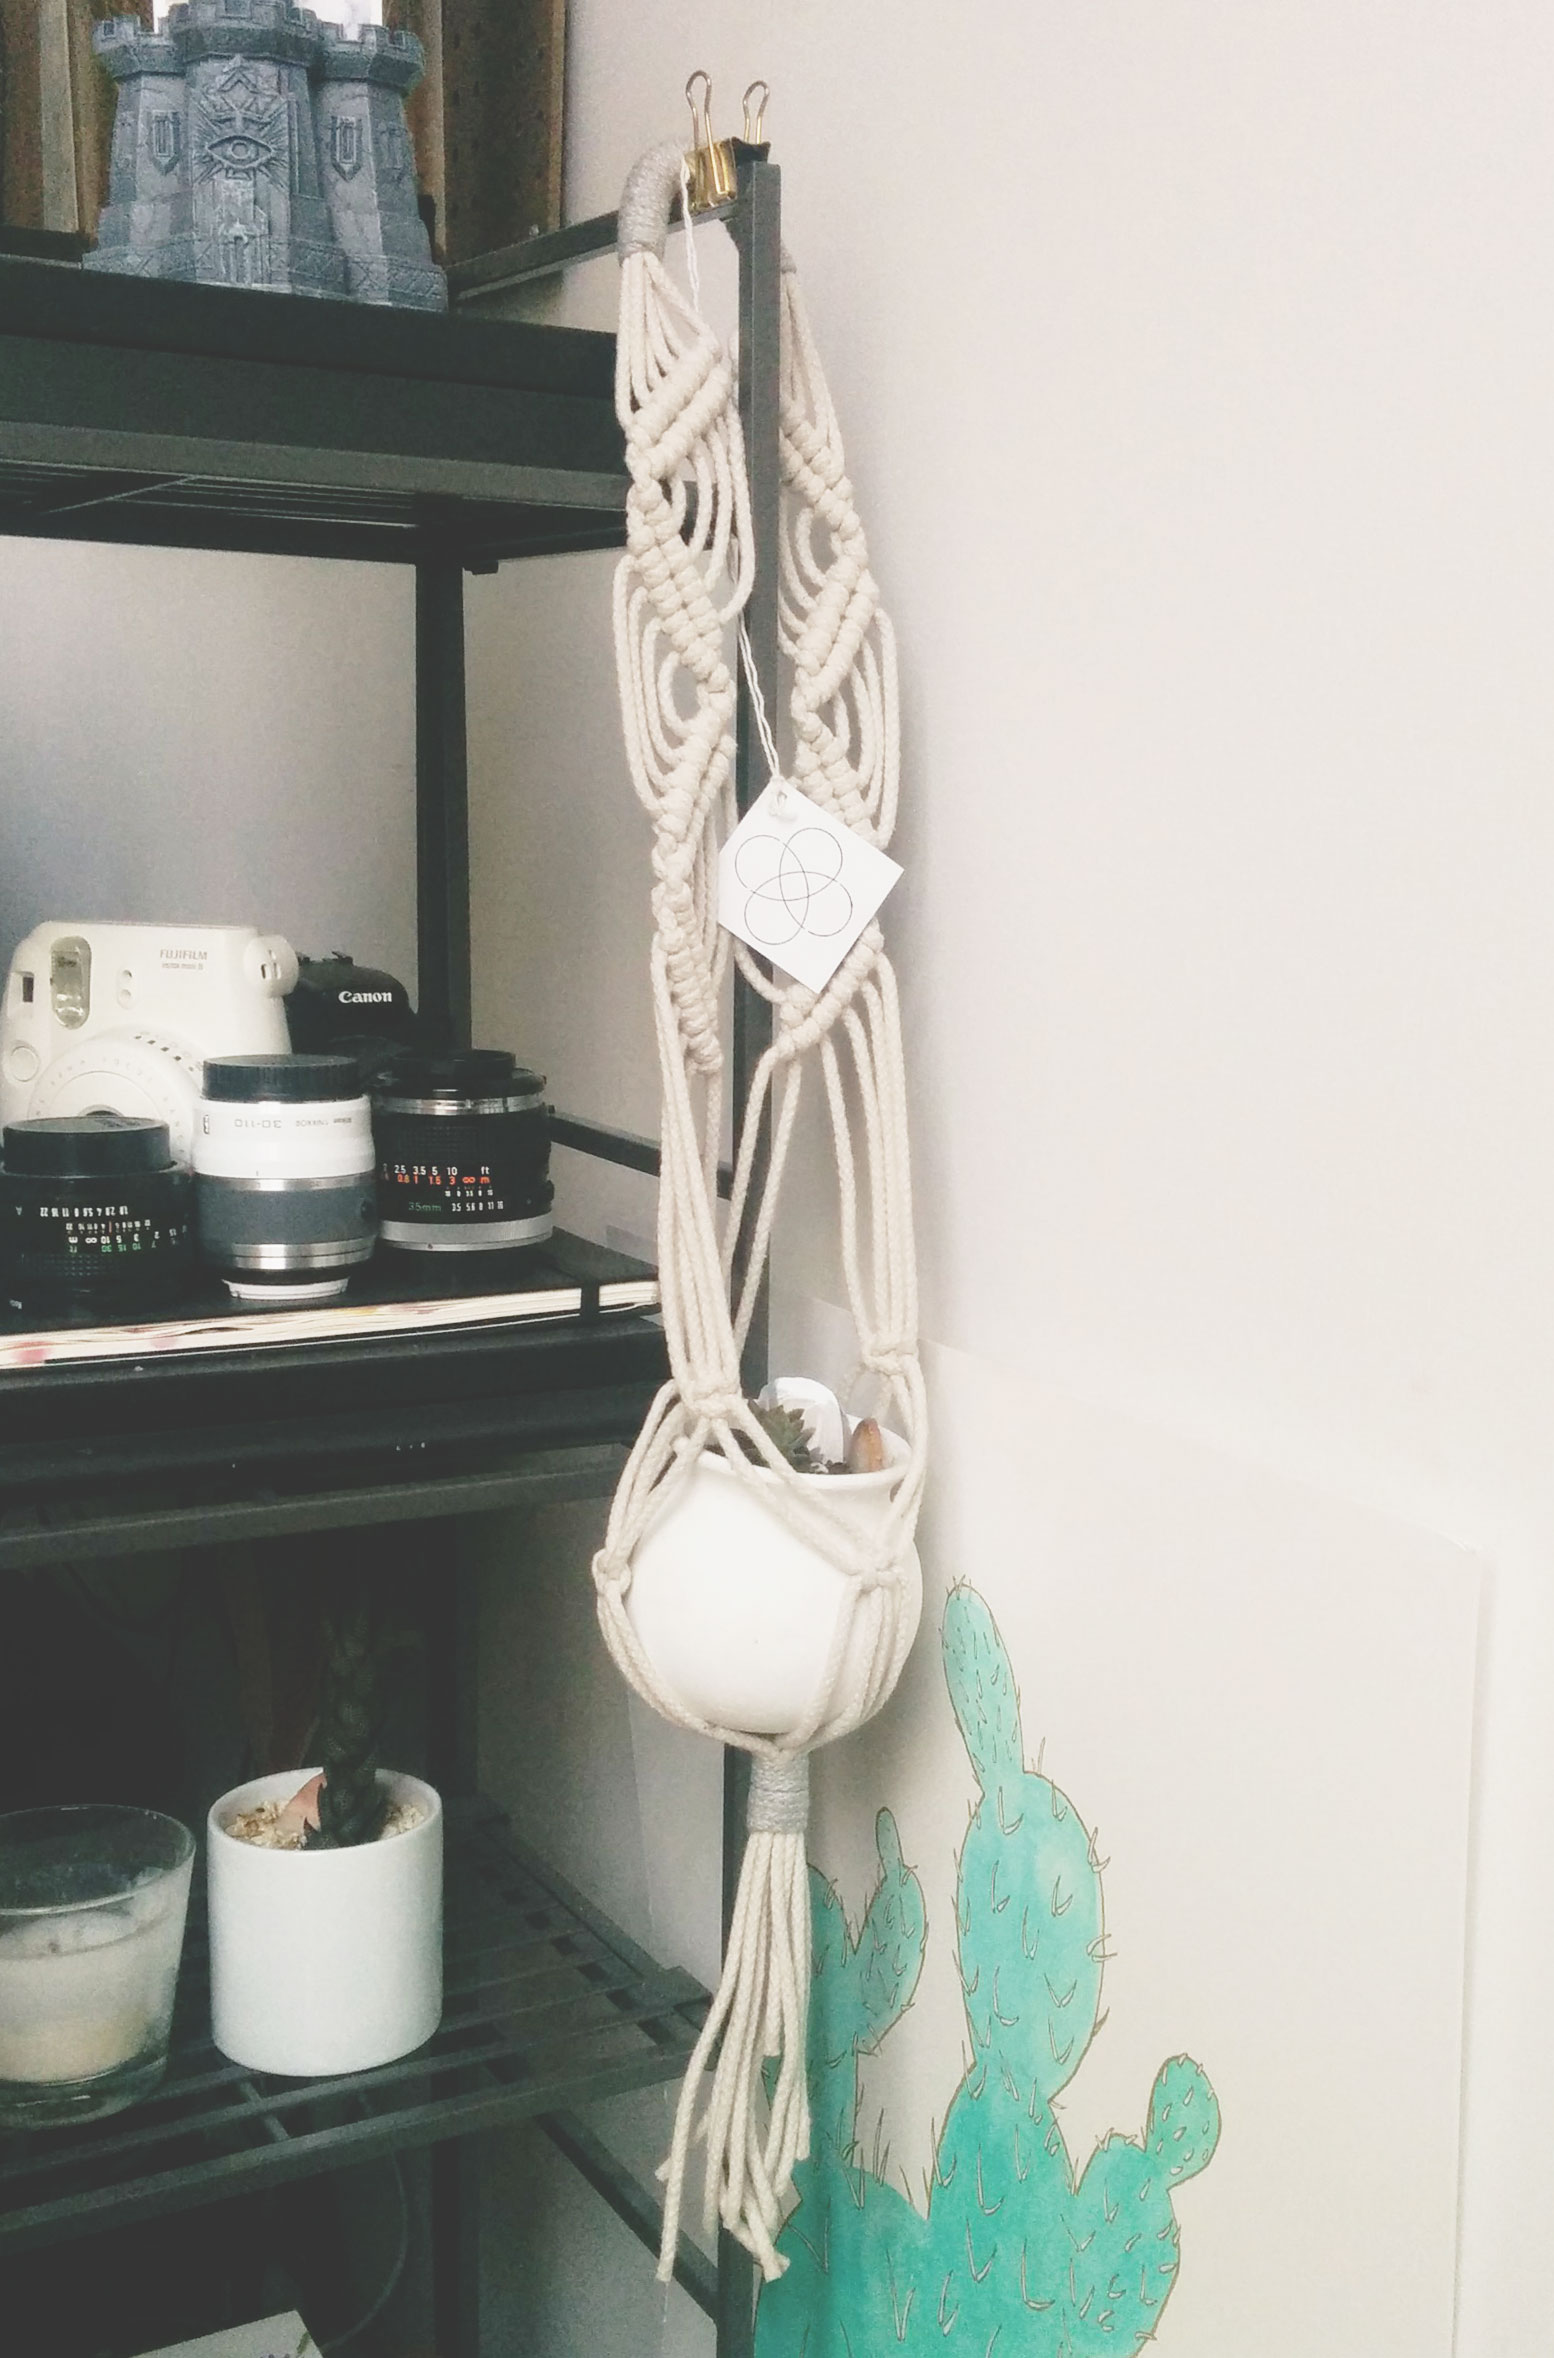 Knotty Bloom's macrame hanger